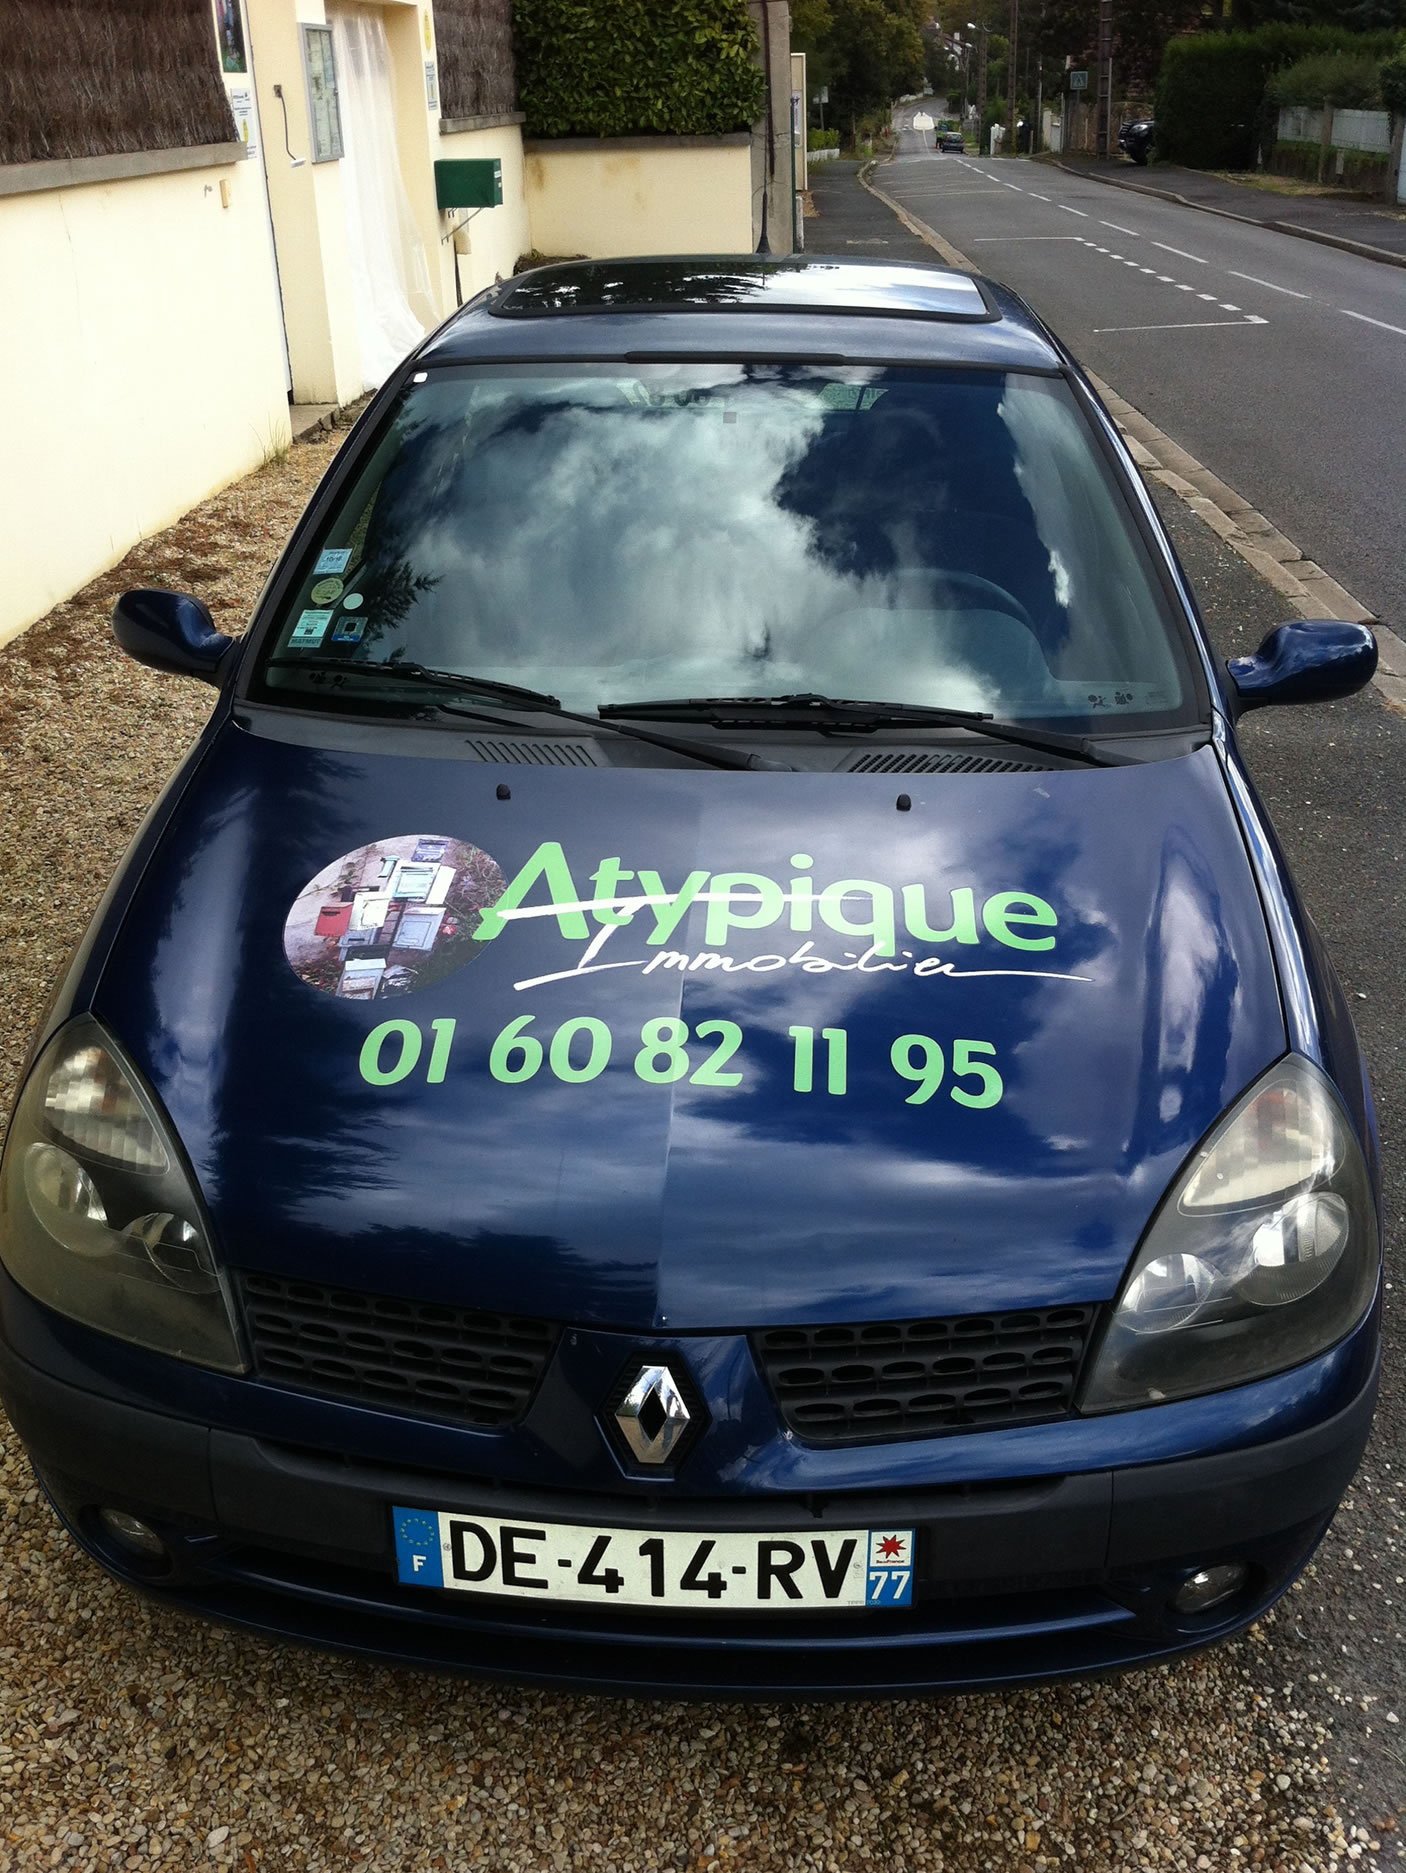 Atypique Immobilier